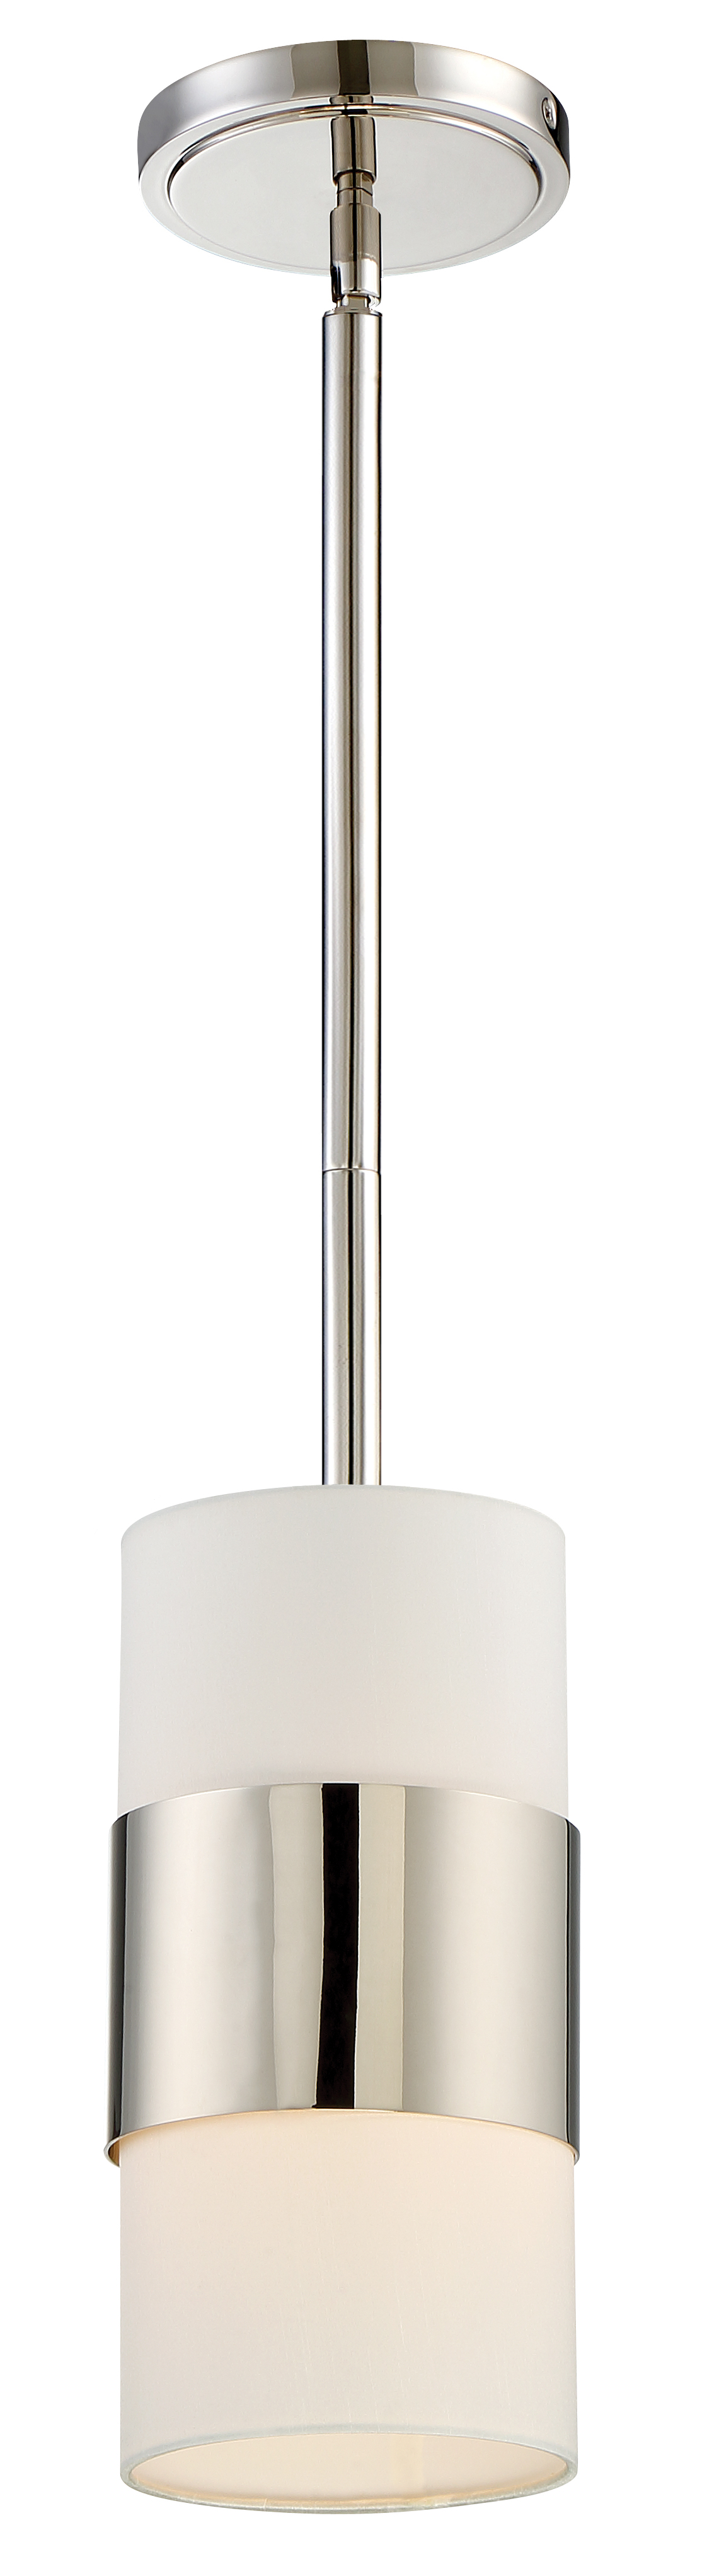 Grayson 1 Light Polished Nickel Pendant